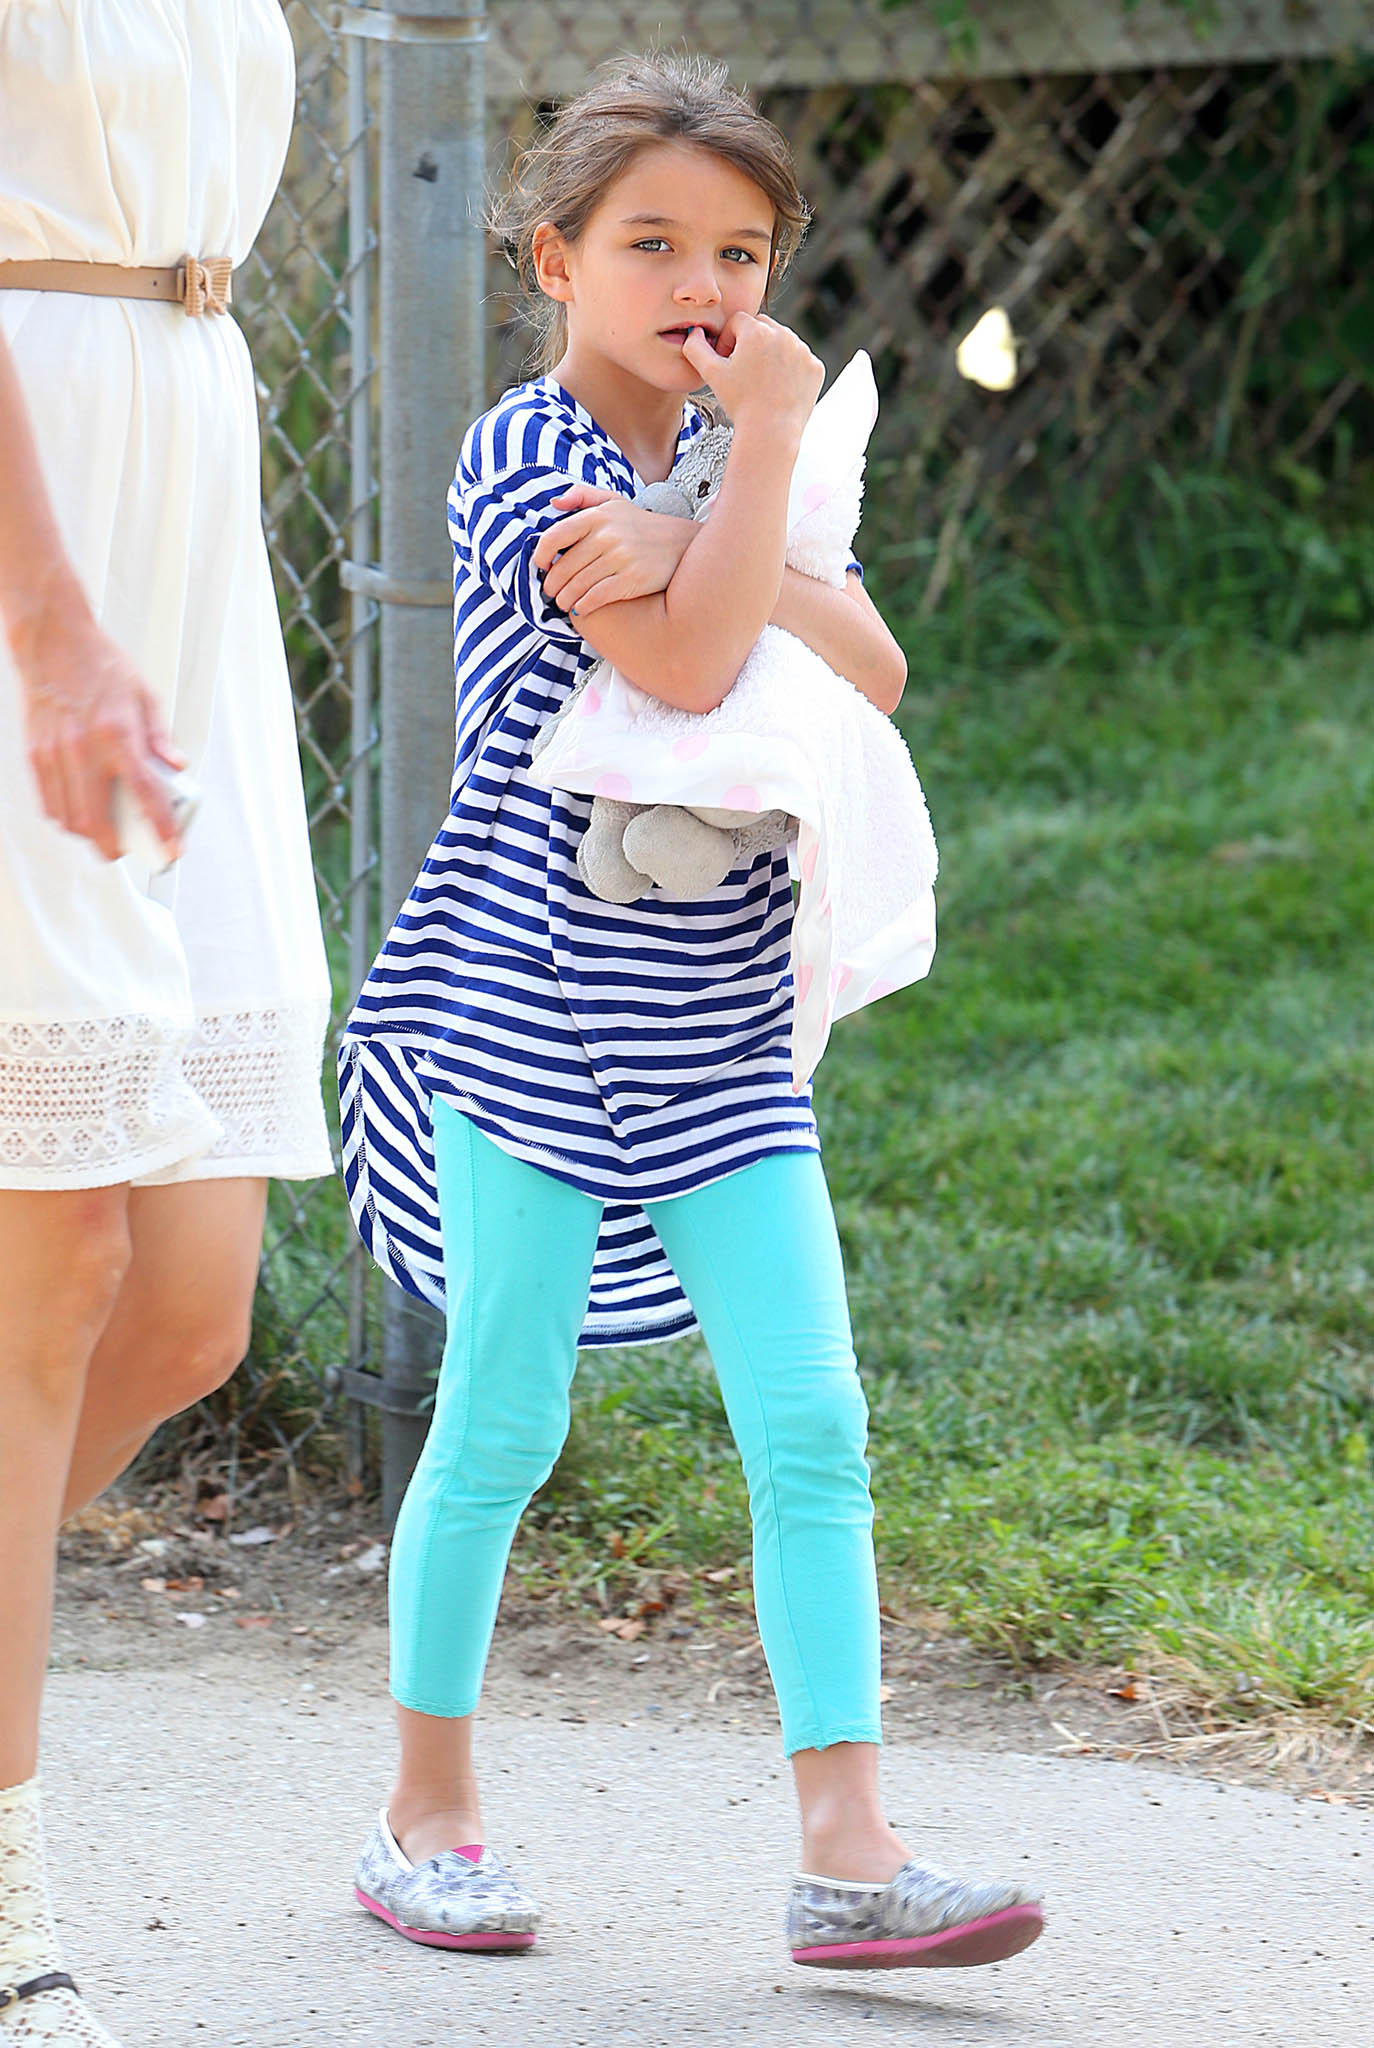 Suri shows off her style. (Splash News)